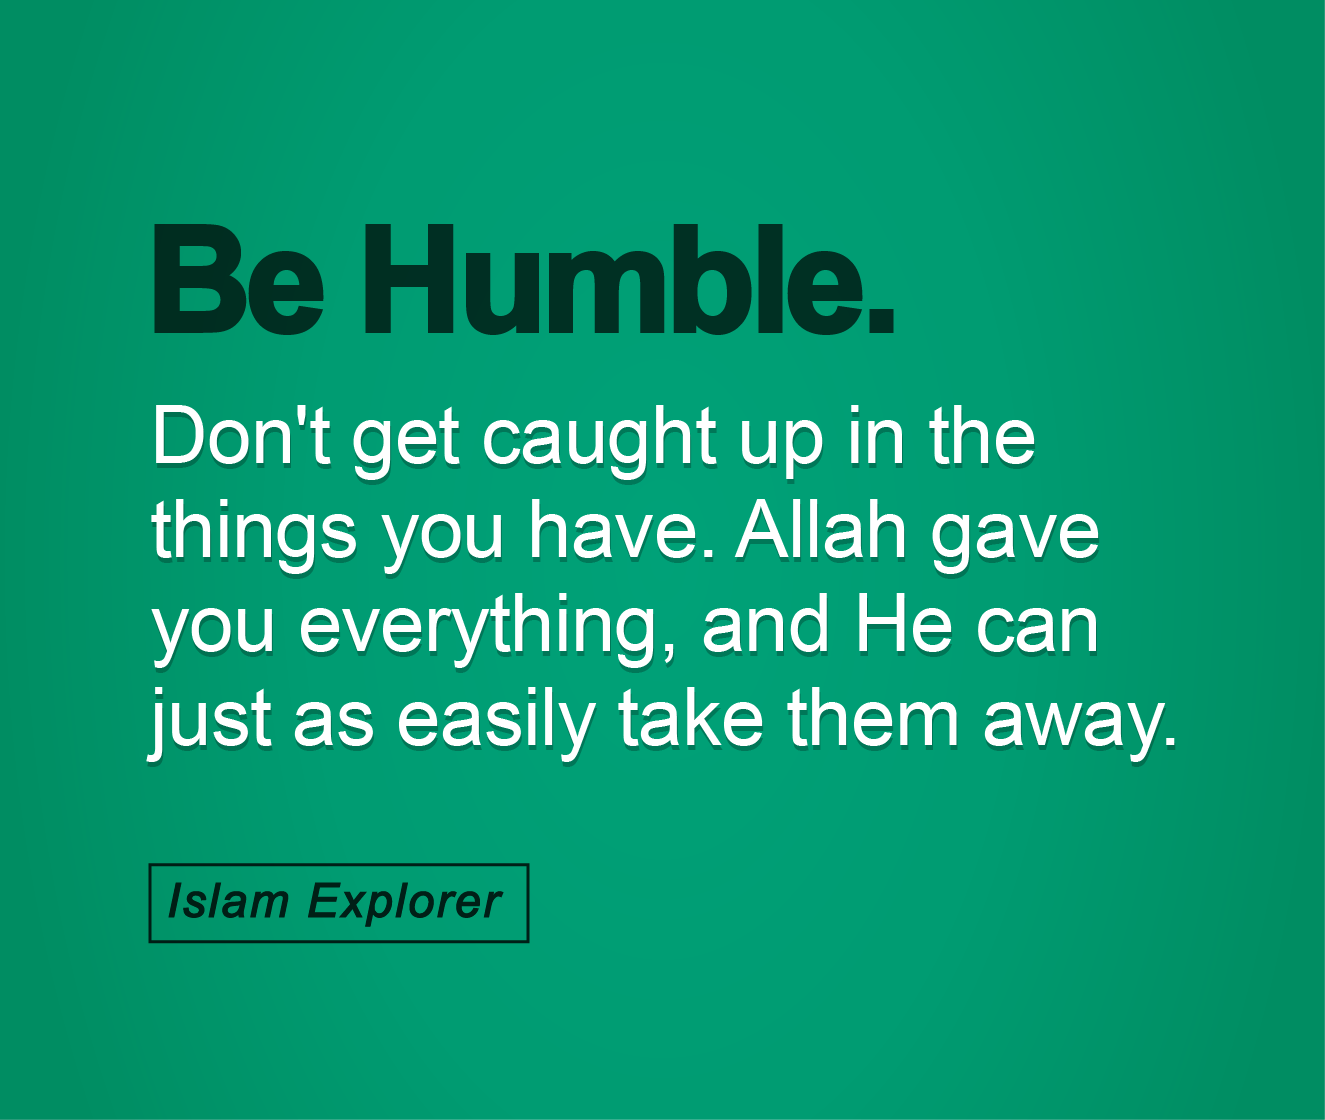 Be Humble, Don't get caught up in the things you have.